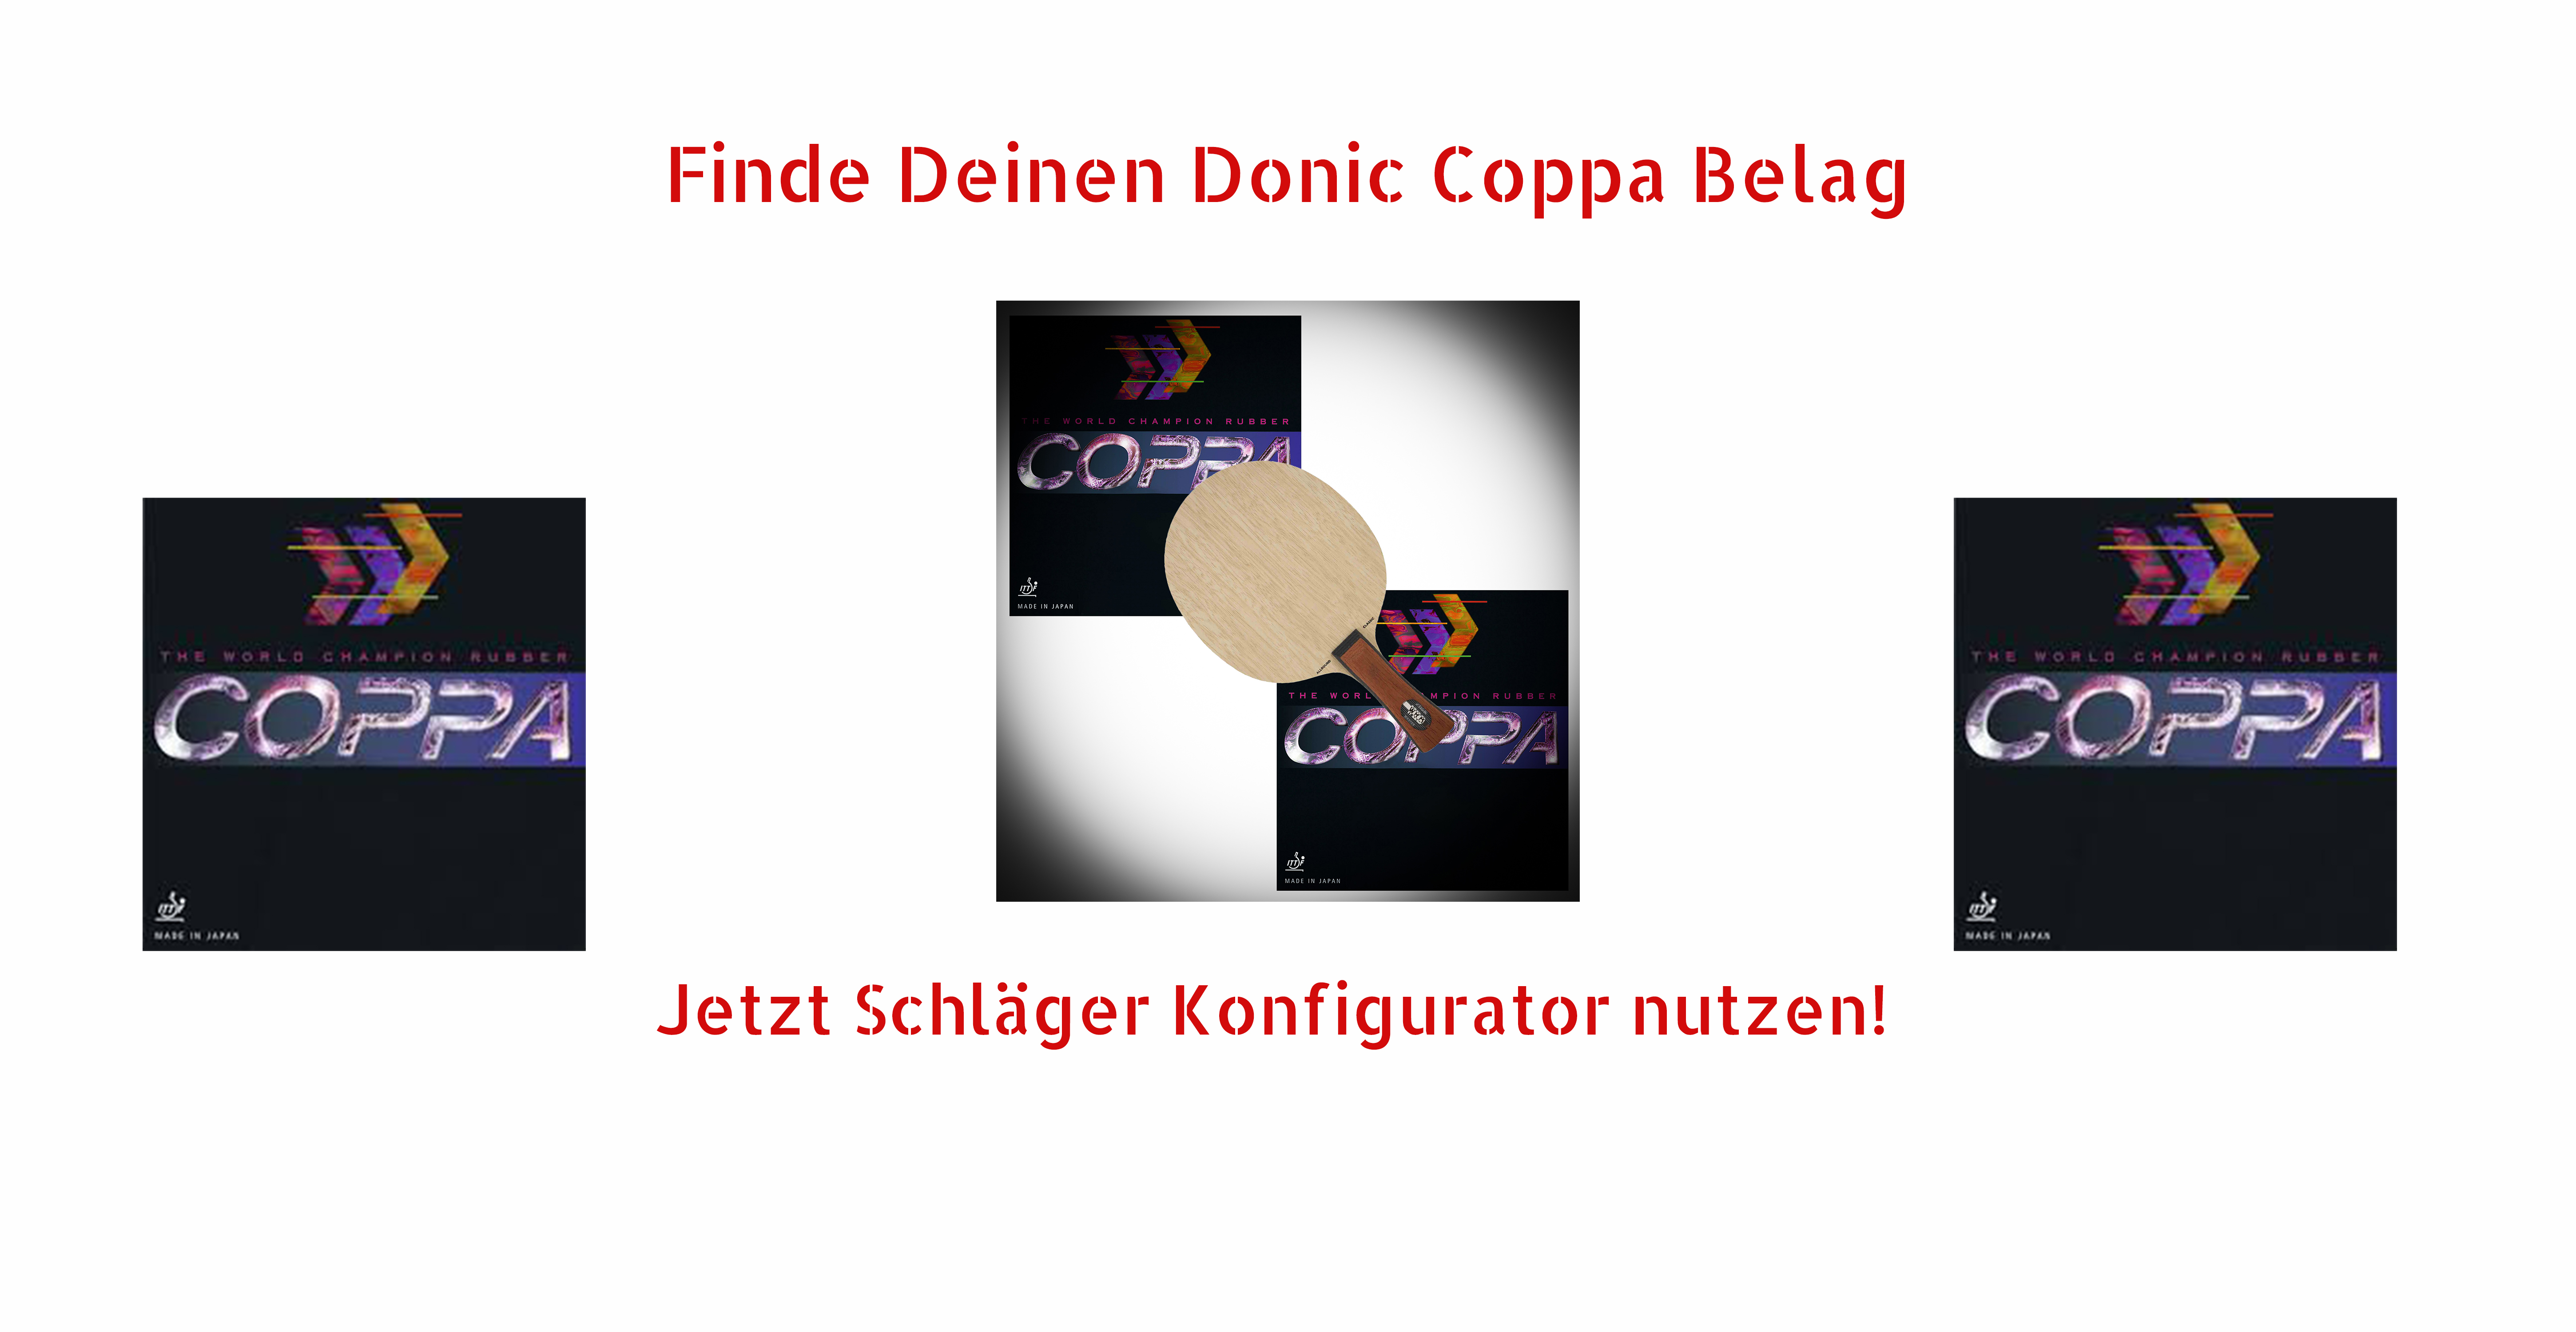 Donic Coppa Beläge